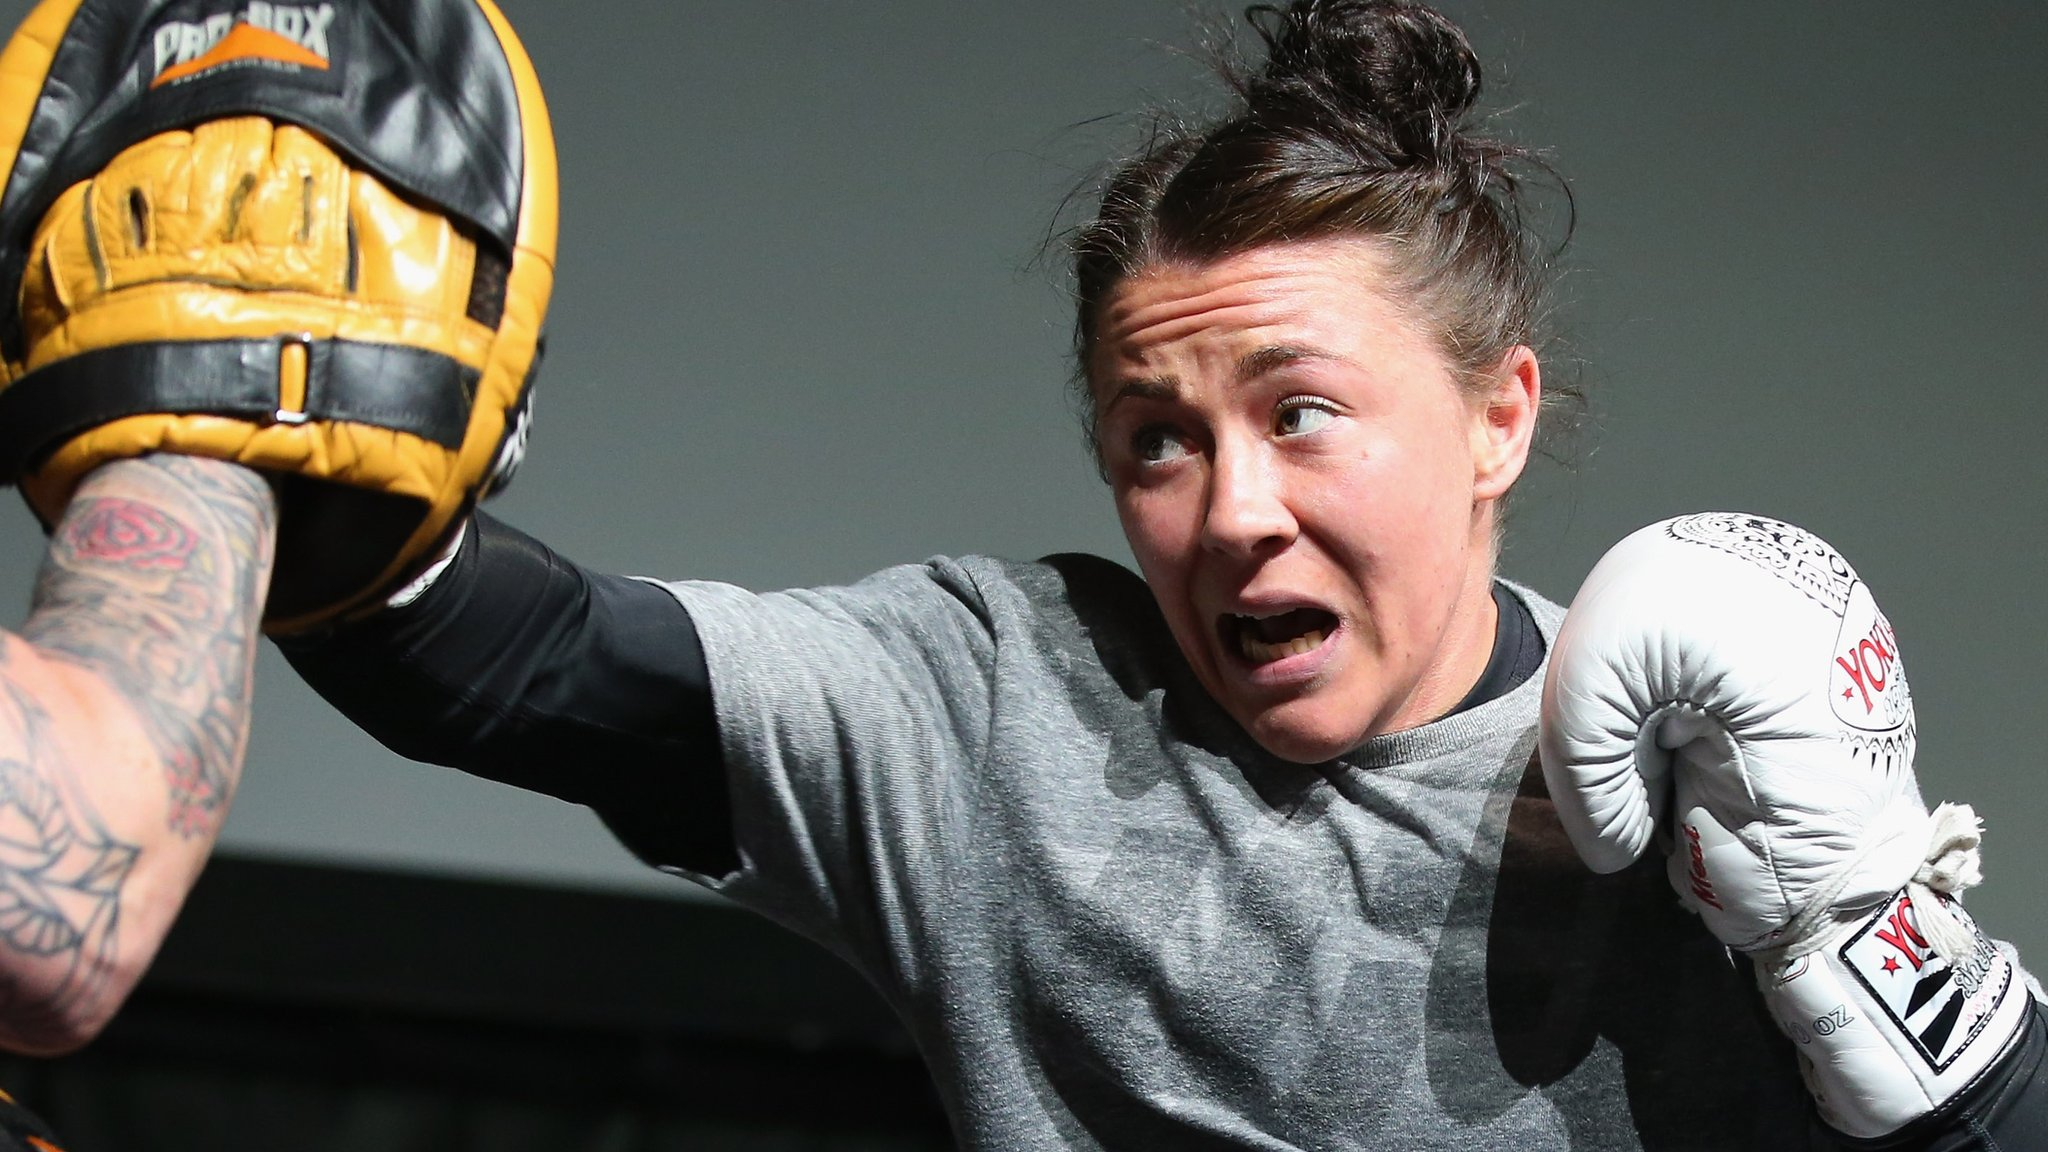 UFC: Molly McCann, Valentina Shevchenko & Joanne Calderwood encourage more women to take up MMA